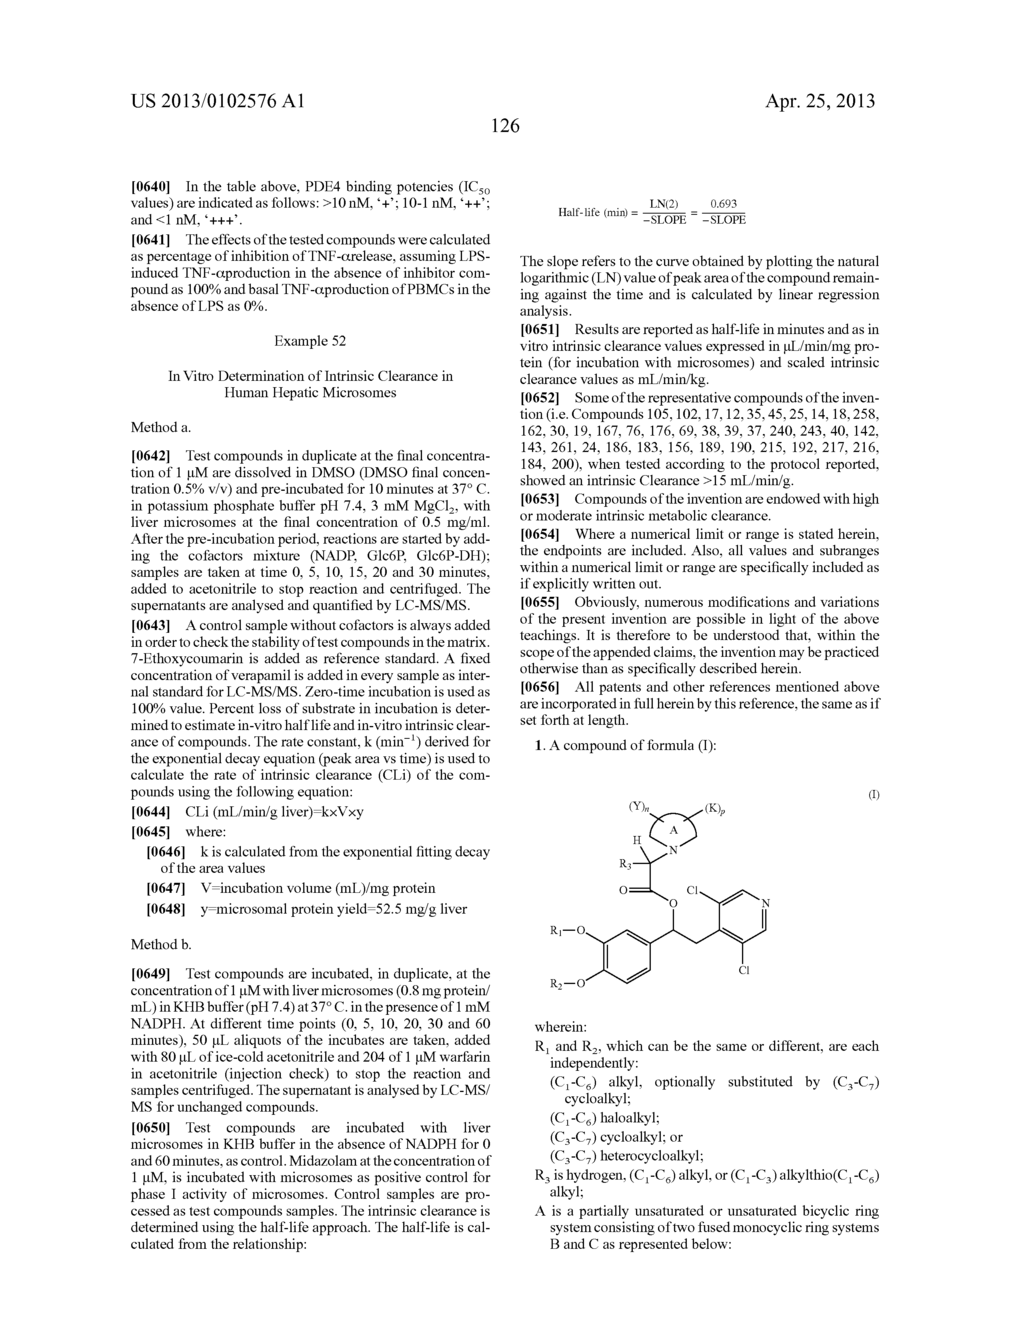 DERIVATIVES OF 1-PHENYL-2-PYRIDINYL ALKYL ALCOHOLS AS PHOSPHODIESTERASE     INHIBITORS - diagram, schematic, and image 126